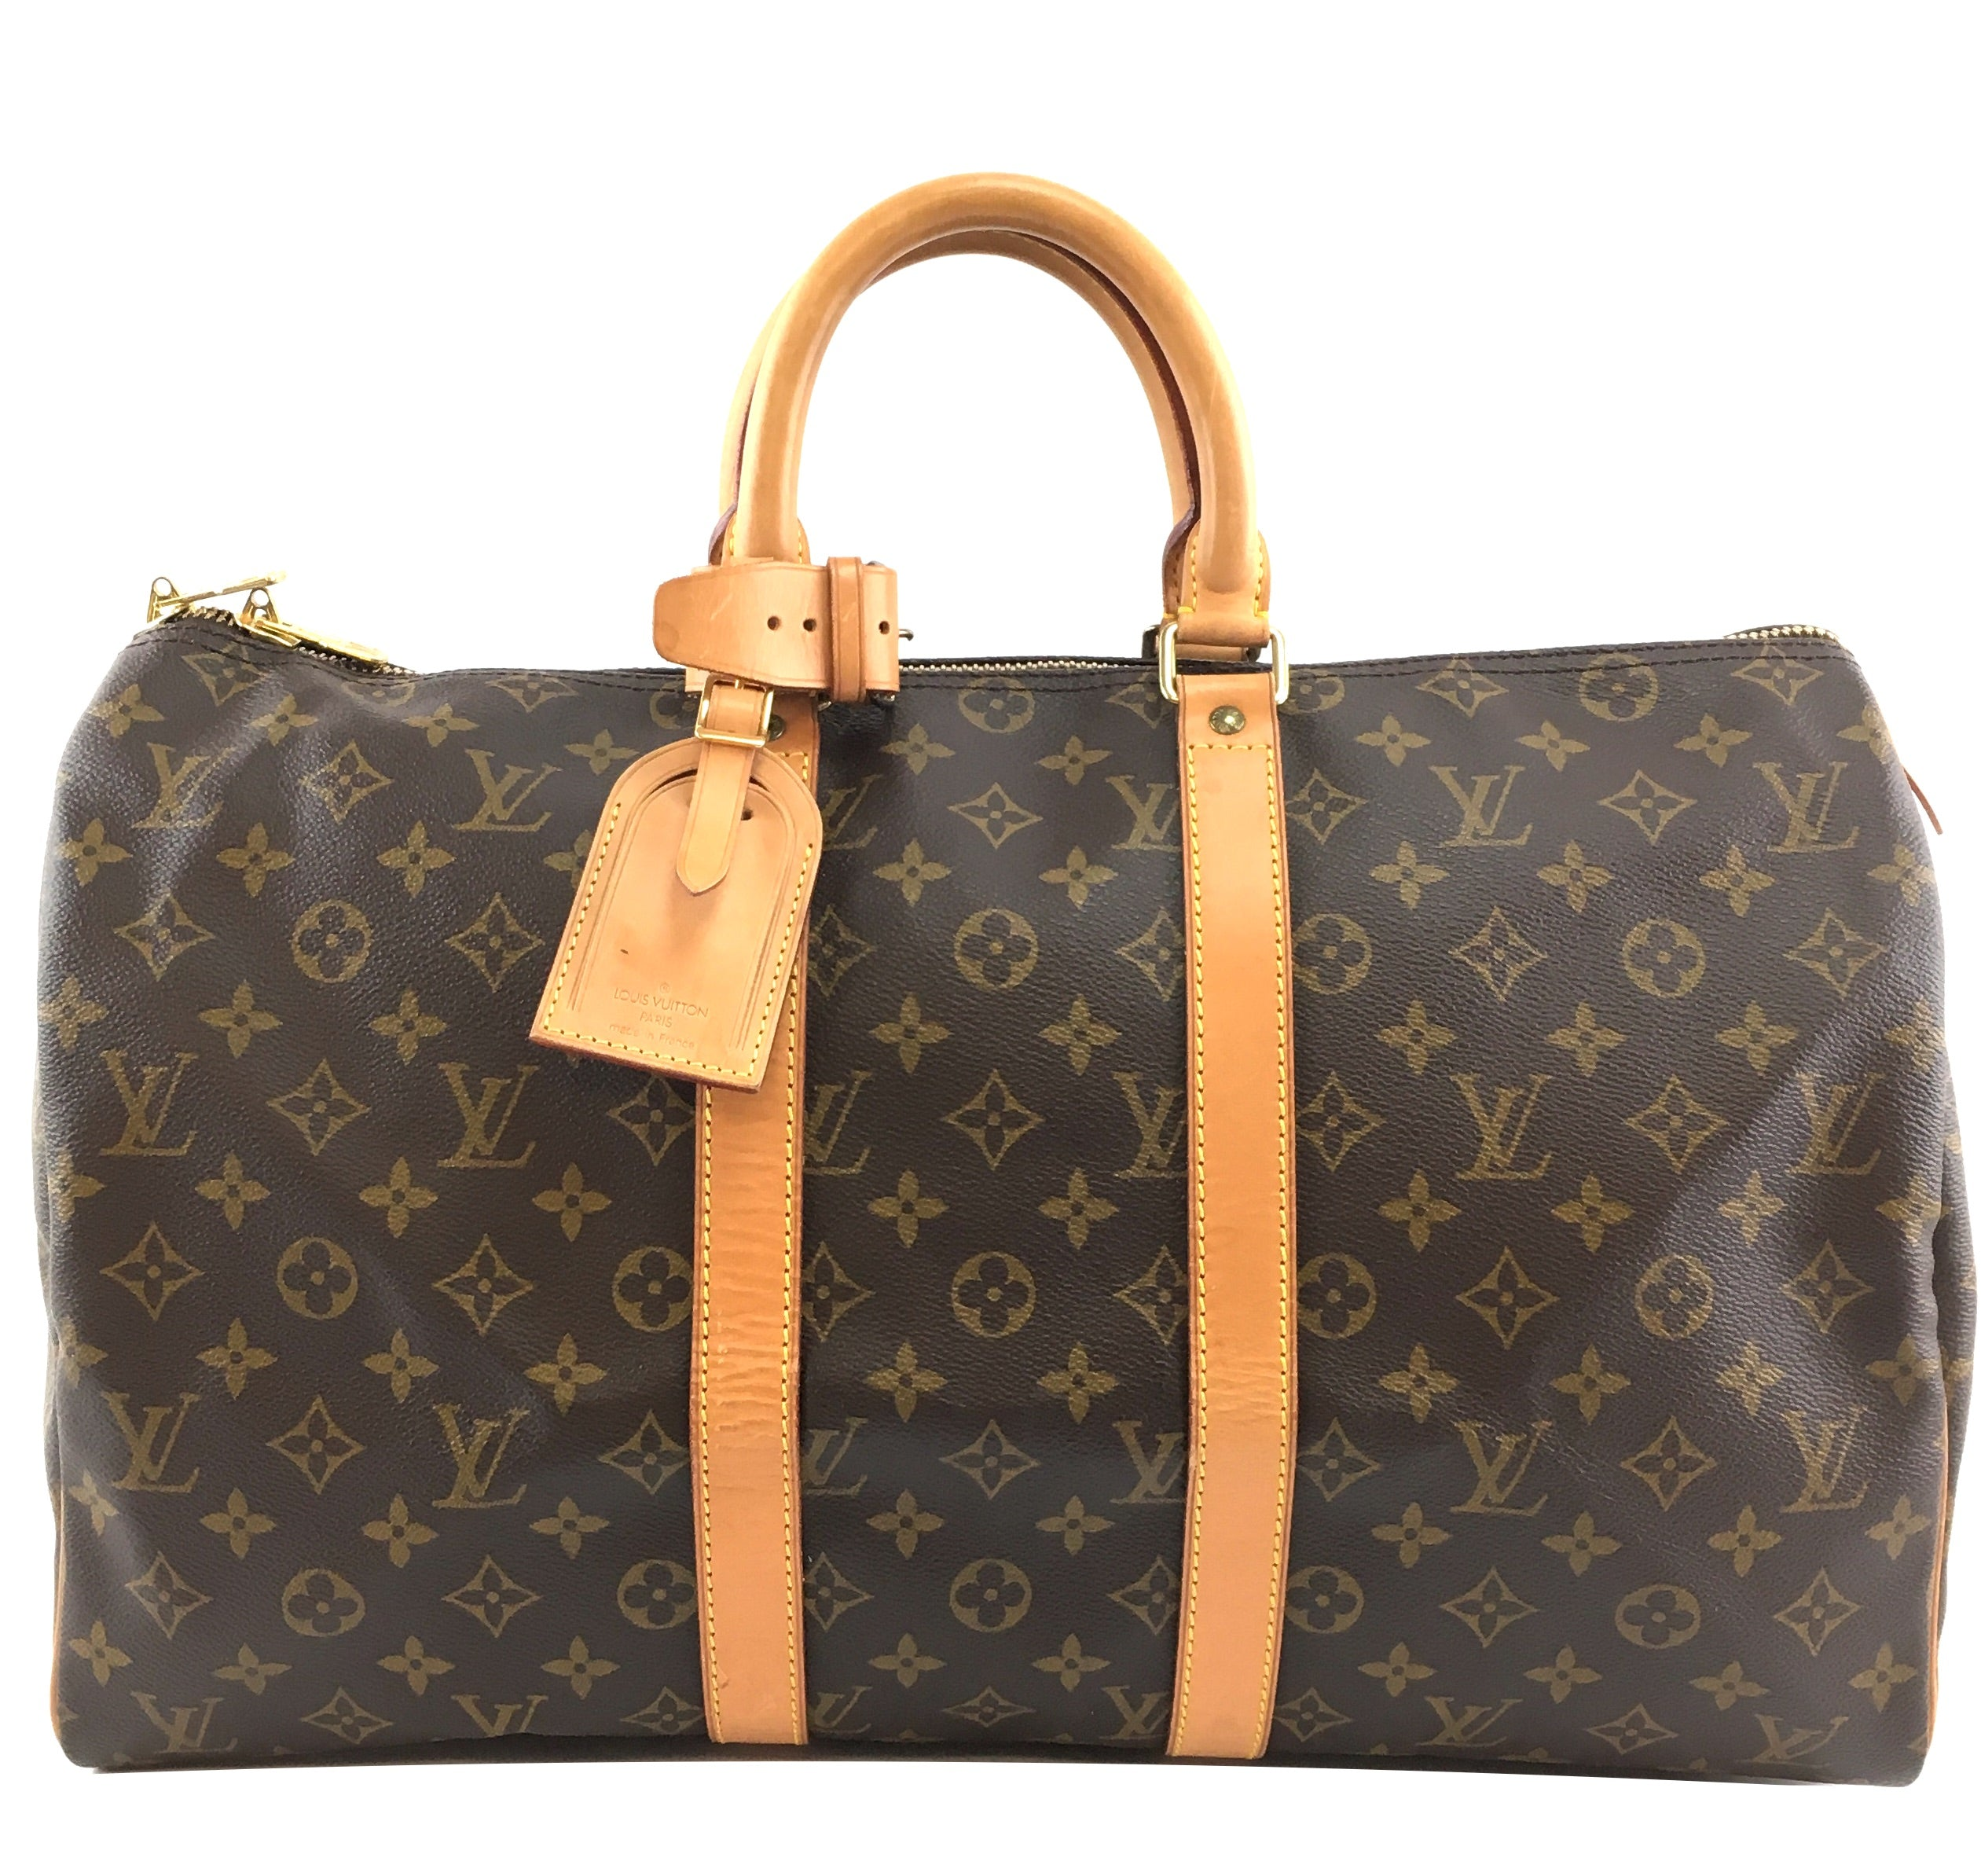 Louis Vuitton Keepall 45 Monogram Canvas